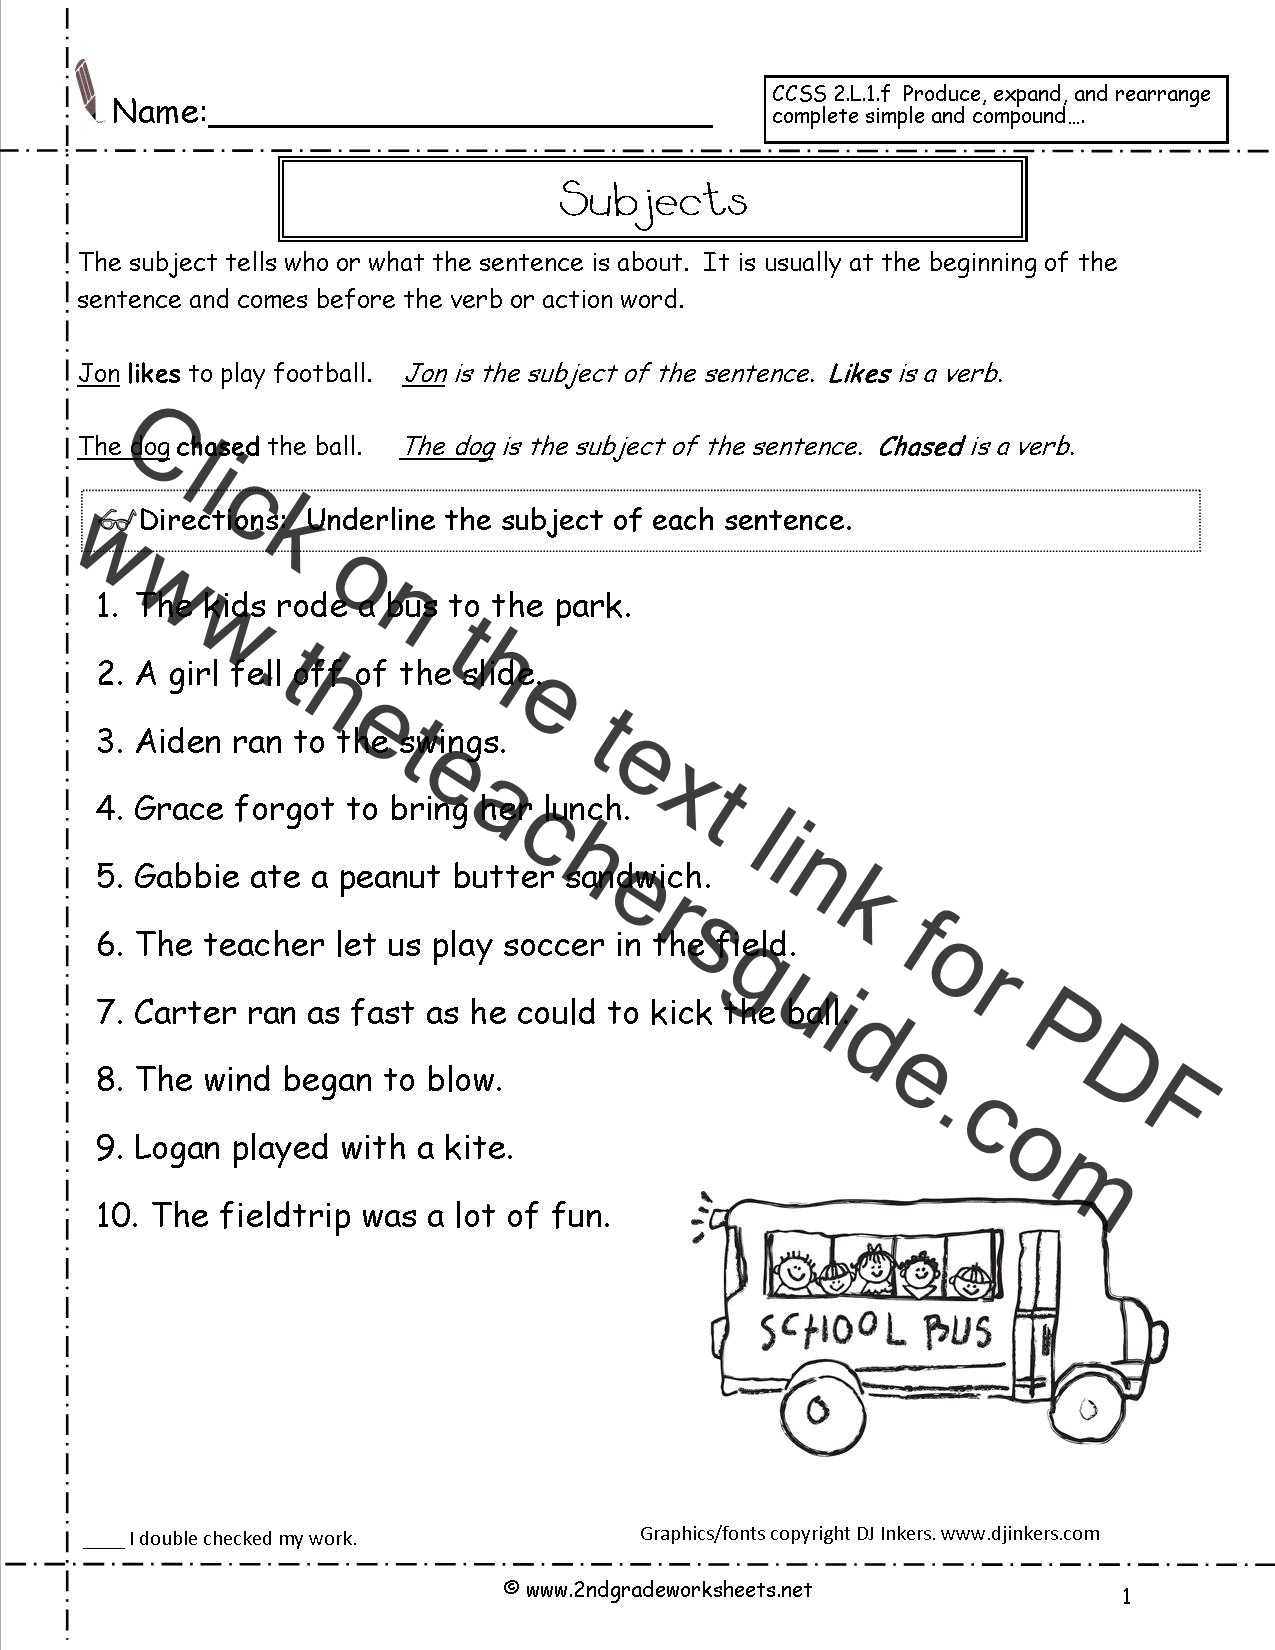 Worksheets 3rd Grade Subject And Predicate Worksheets second grade sentences worksheets ccss 2 l 1 f subject worksheet sentence subjects